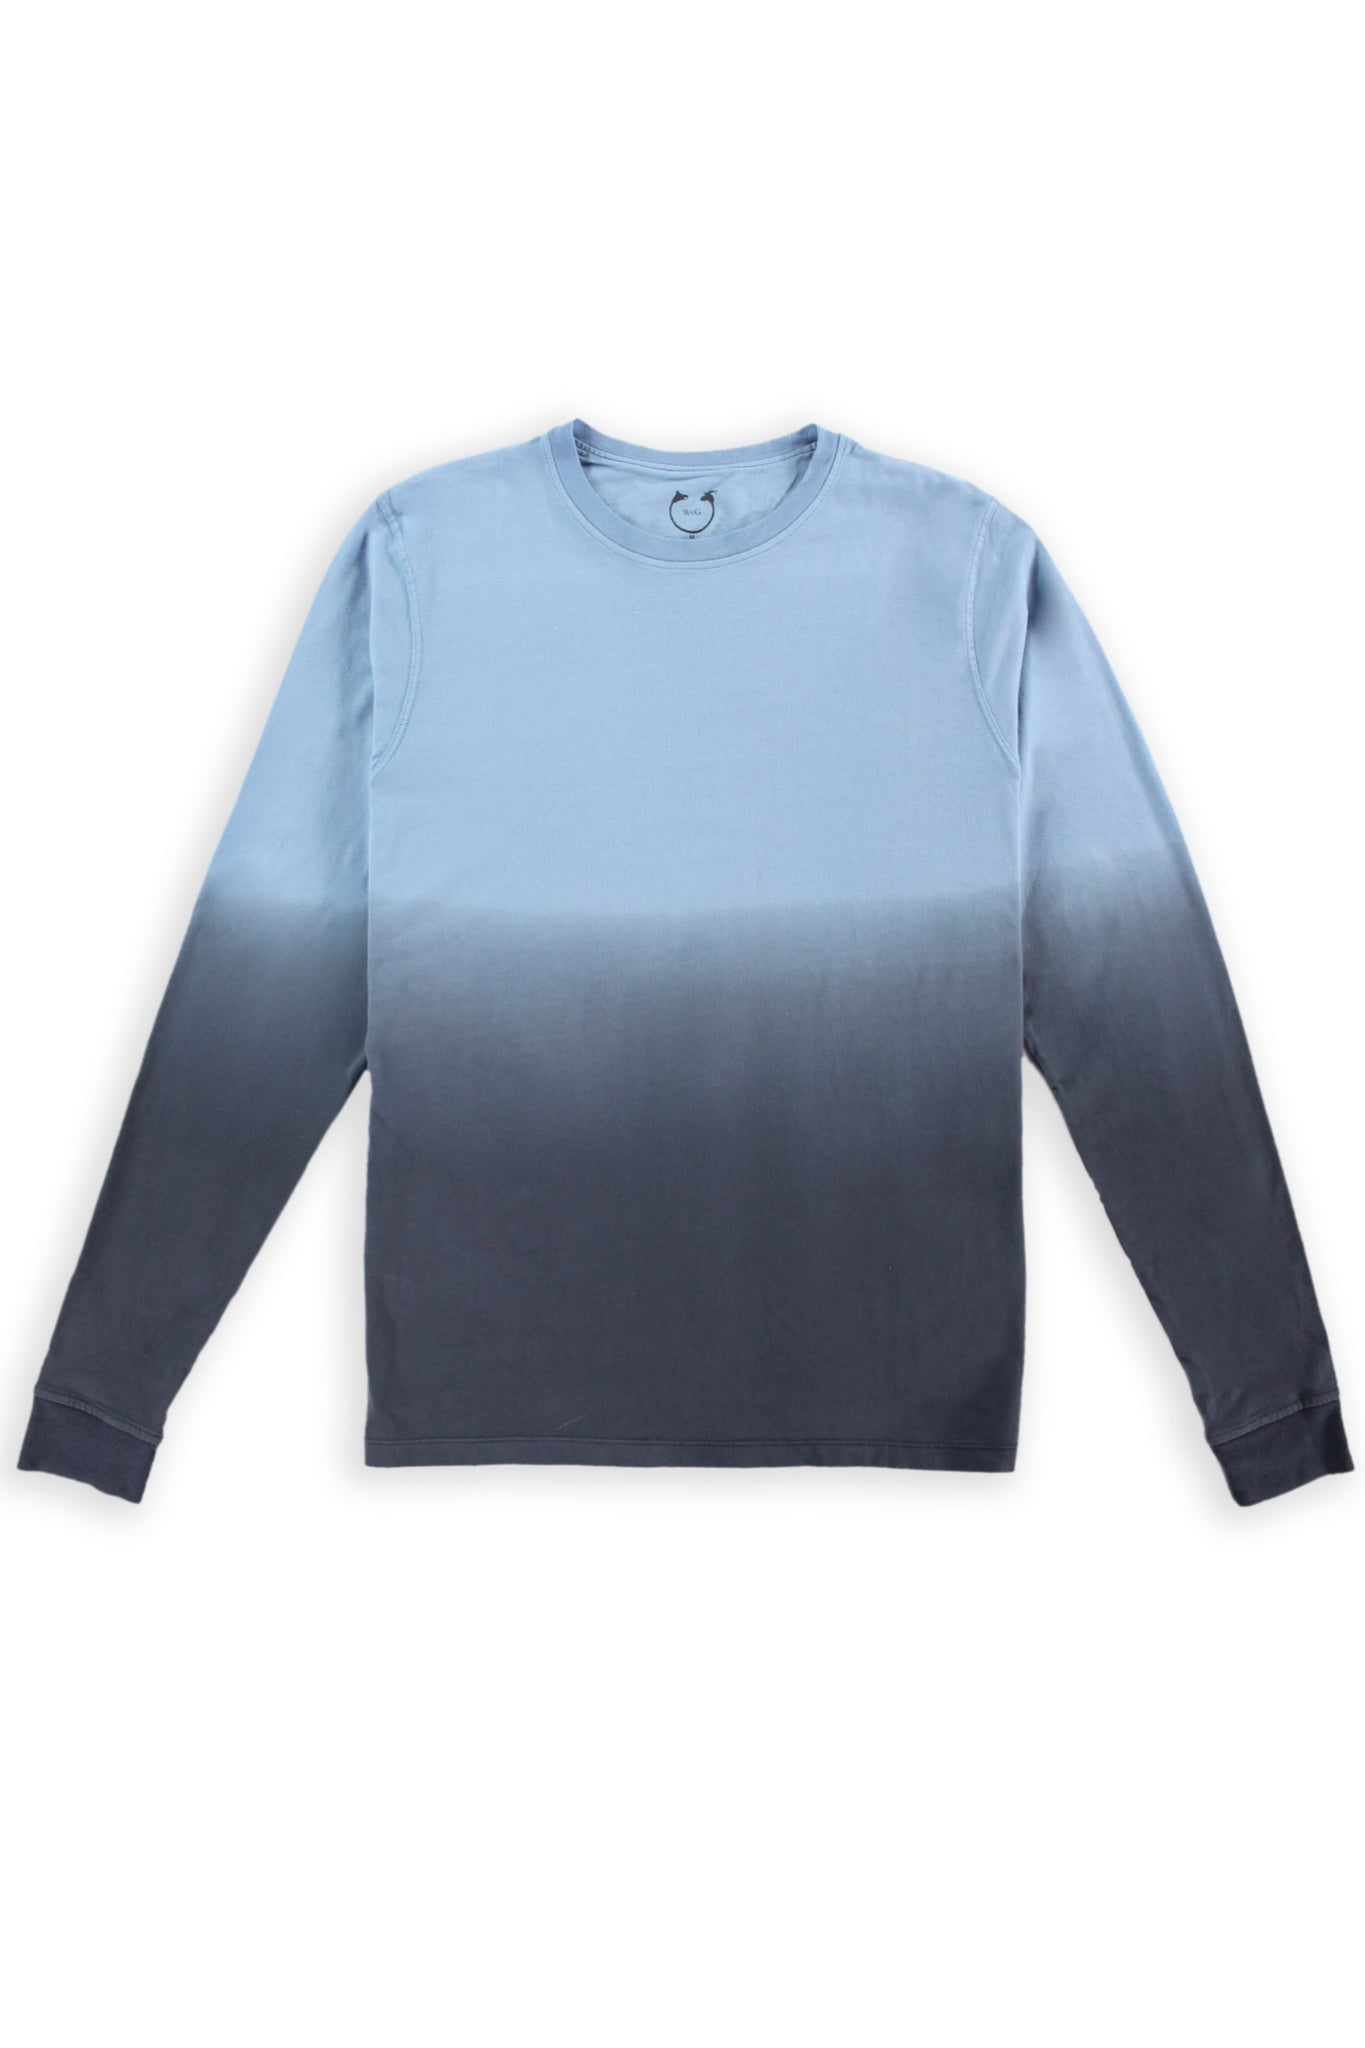 Long Sleeve Crew Neck Organic Cotton Modal Tee Blue Ombré